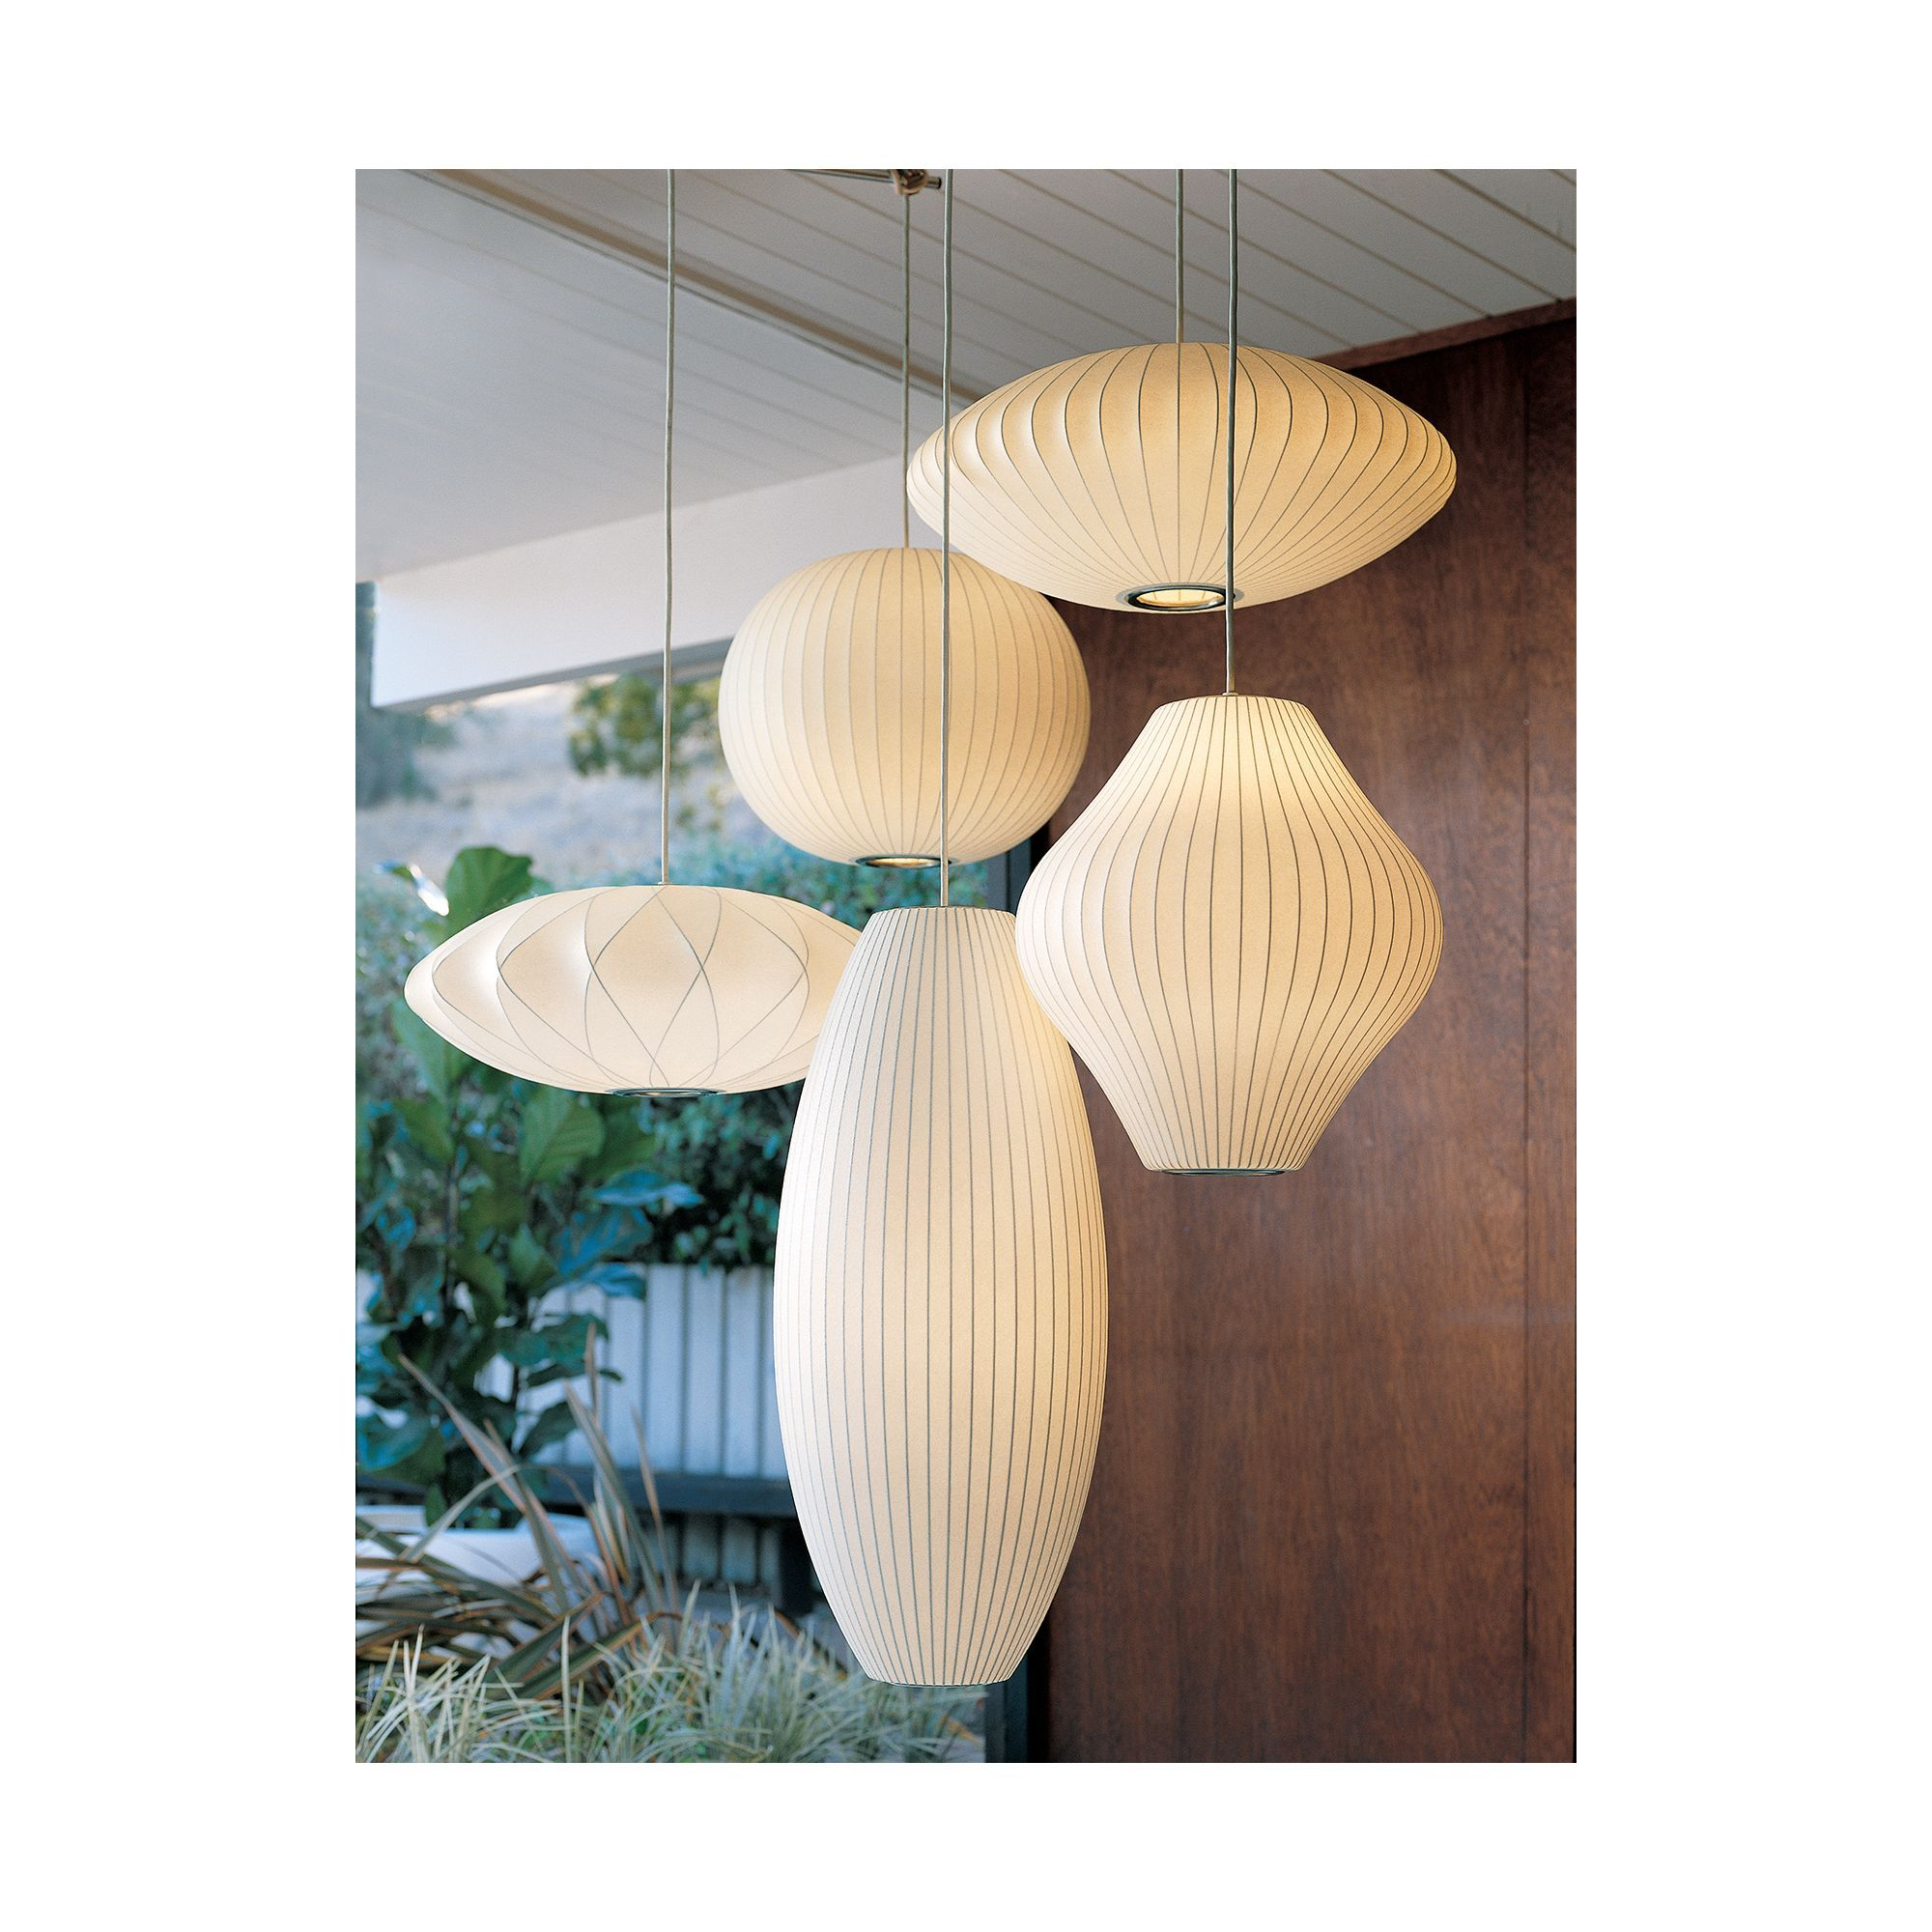 Nelson Saucer Crisscross Bubble Pendant Design Within Reach In 2020 George Nelson Bubble Lamp Nelson Bubble Lamp Bubble Lamps